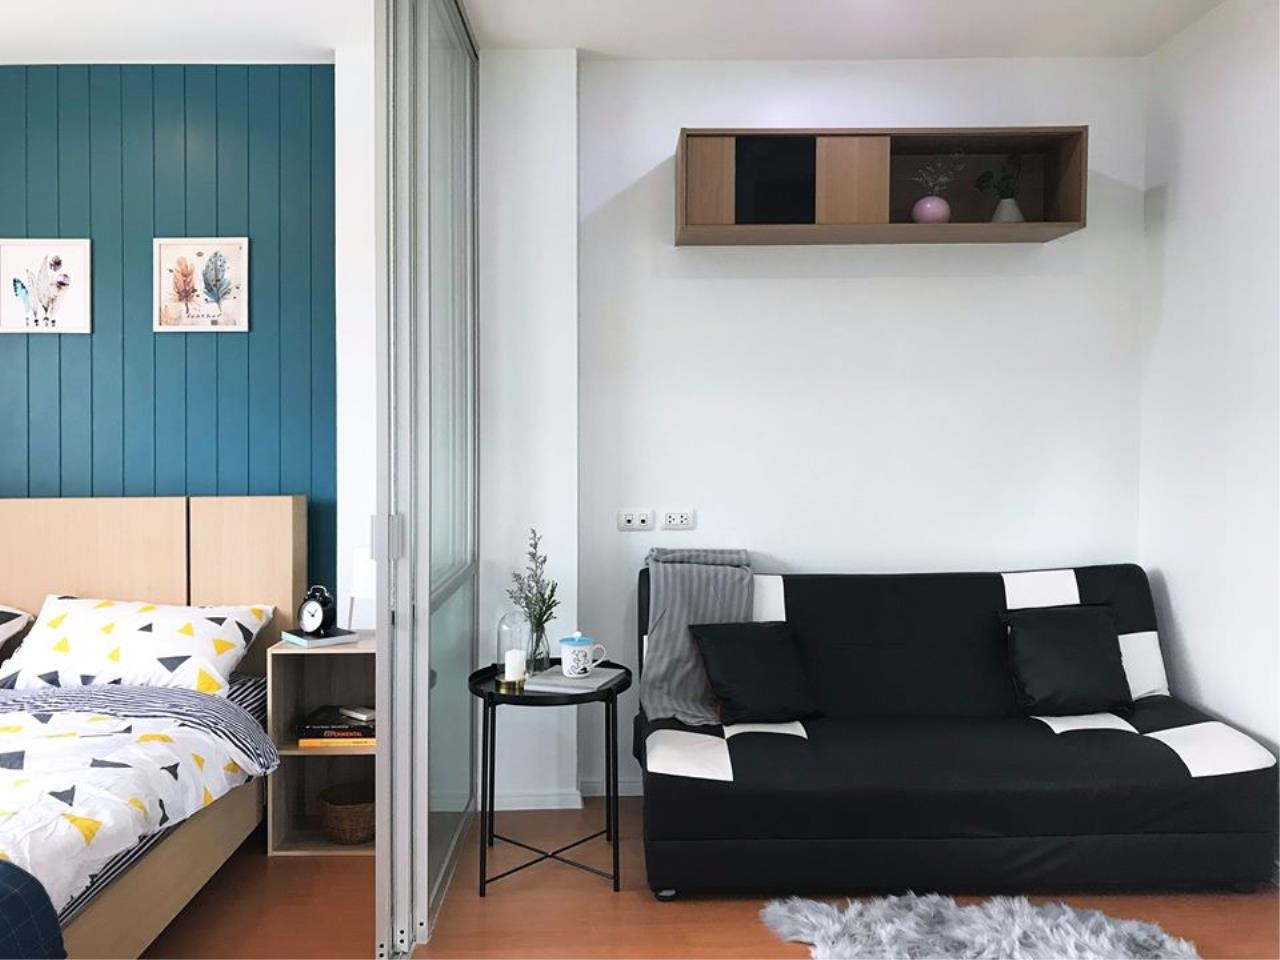 Agent Thawanrat Agency's Condo for rental LUMPINI CONDOTOWN NIDA – SEREETHAI 1 bedroom,1 bathroom. size 23 sqm.Floor 32 th. fully furnished Ready to move in 1